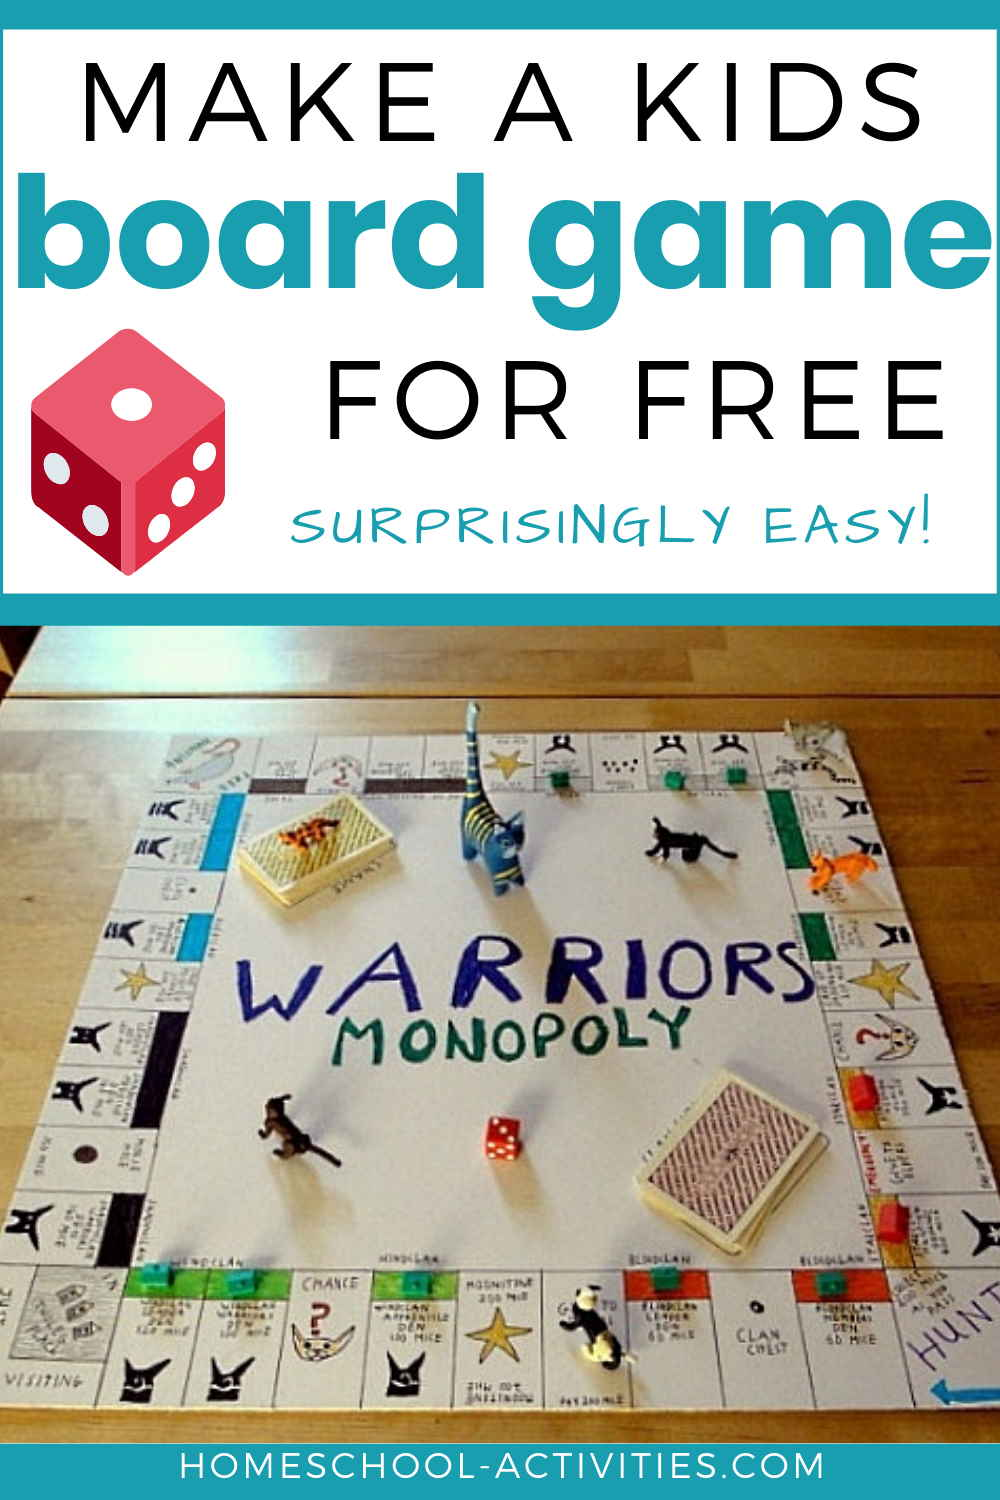 Make a kids board game for free